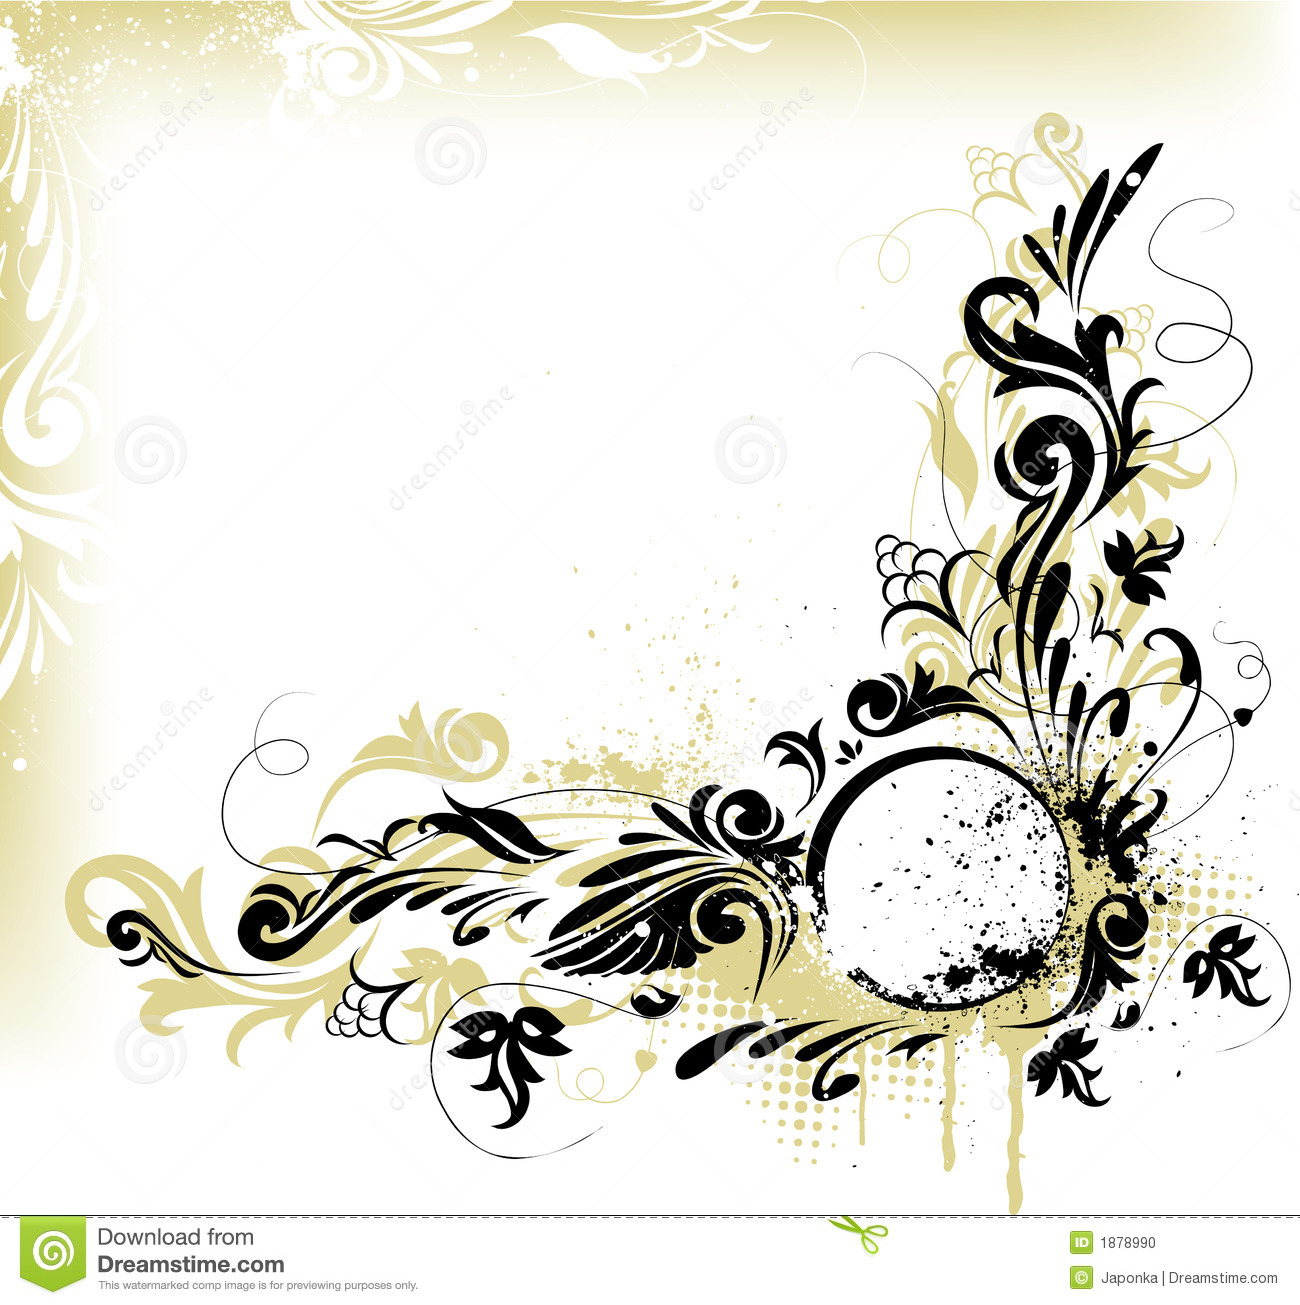 Decorative Vector Banners